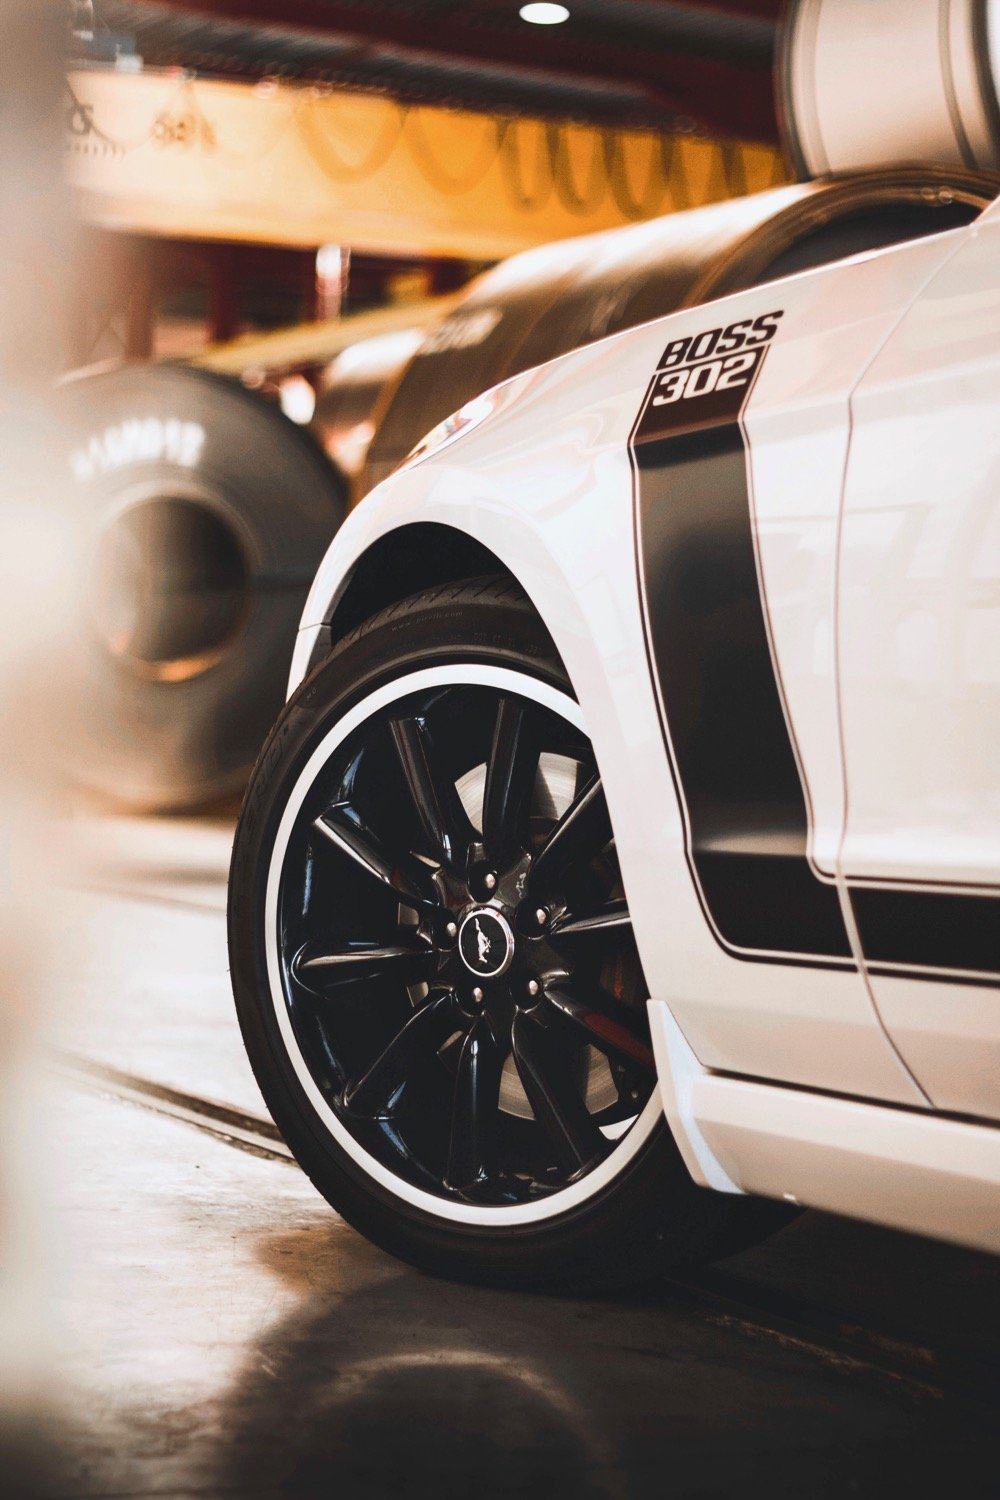 Crystal - 2013 Ford Mustang Boss 302 - front wheel